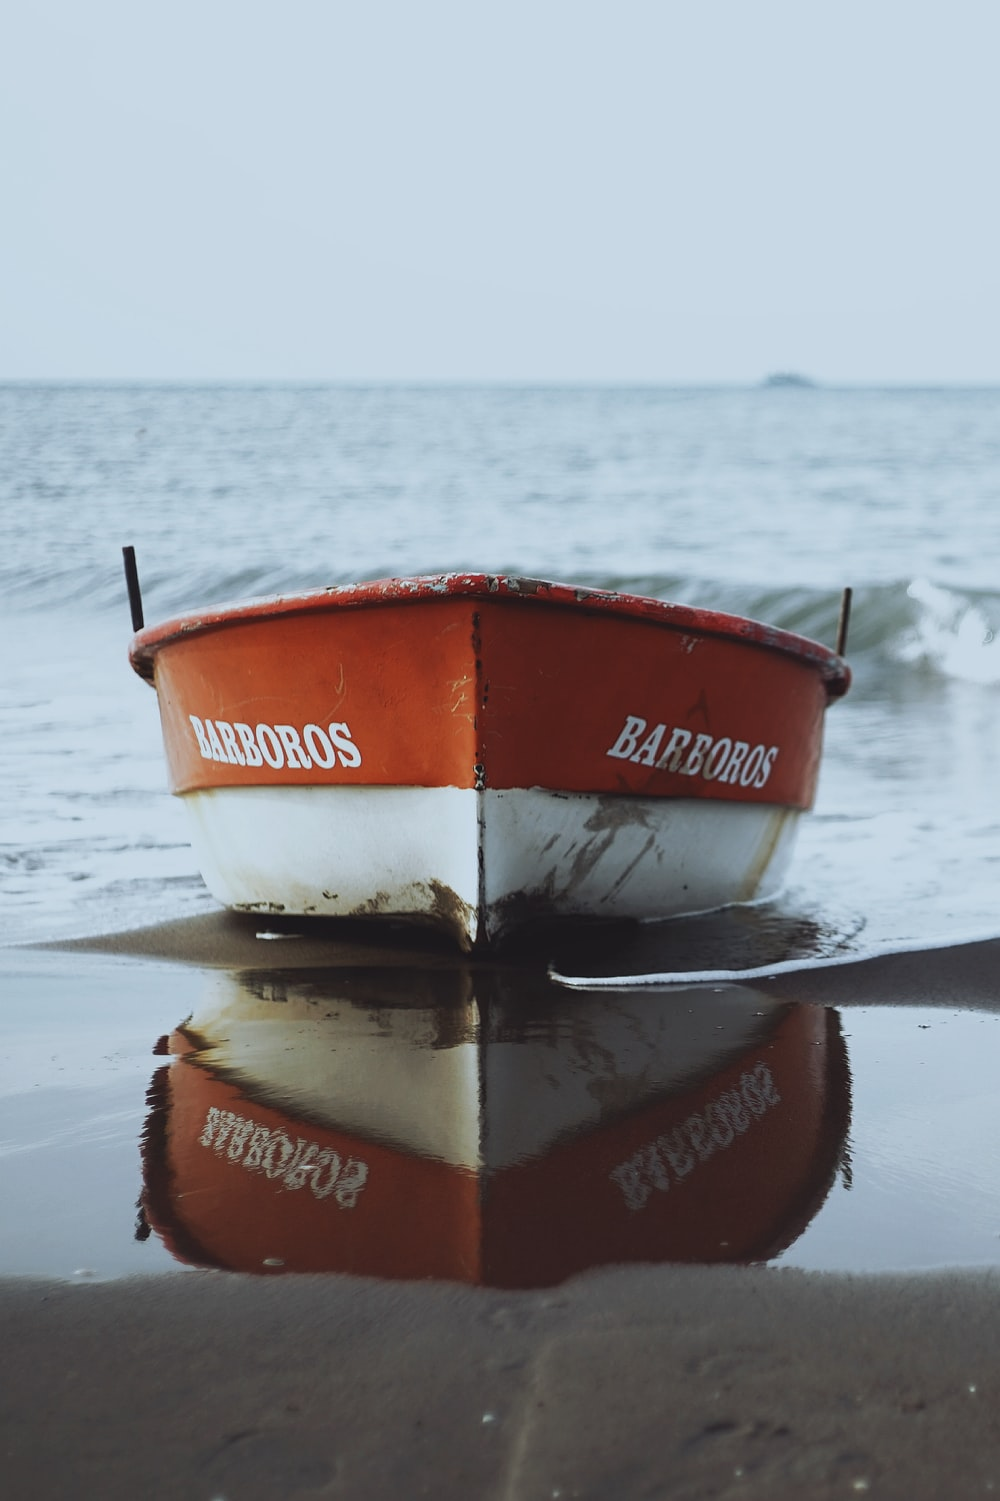 red and white Barboros boat on seashore